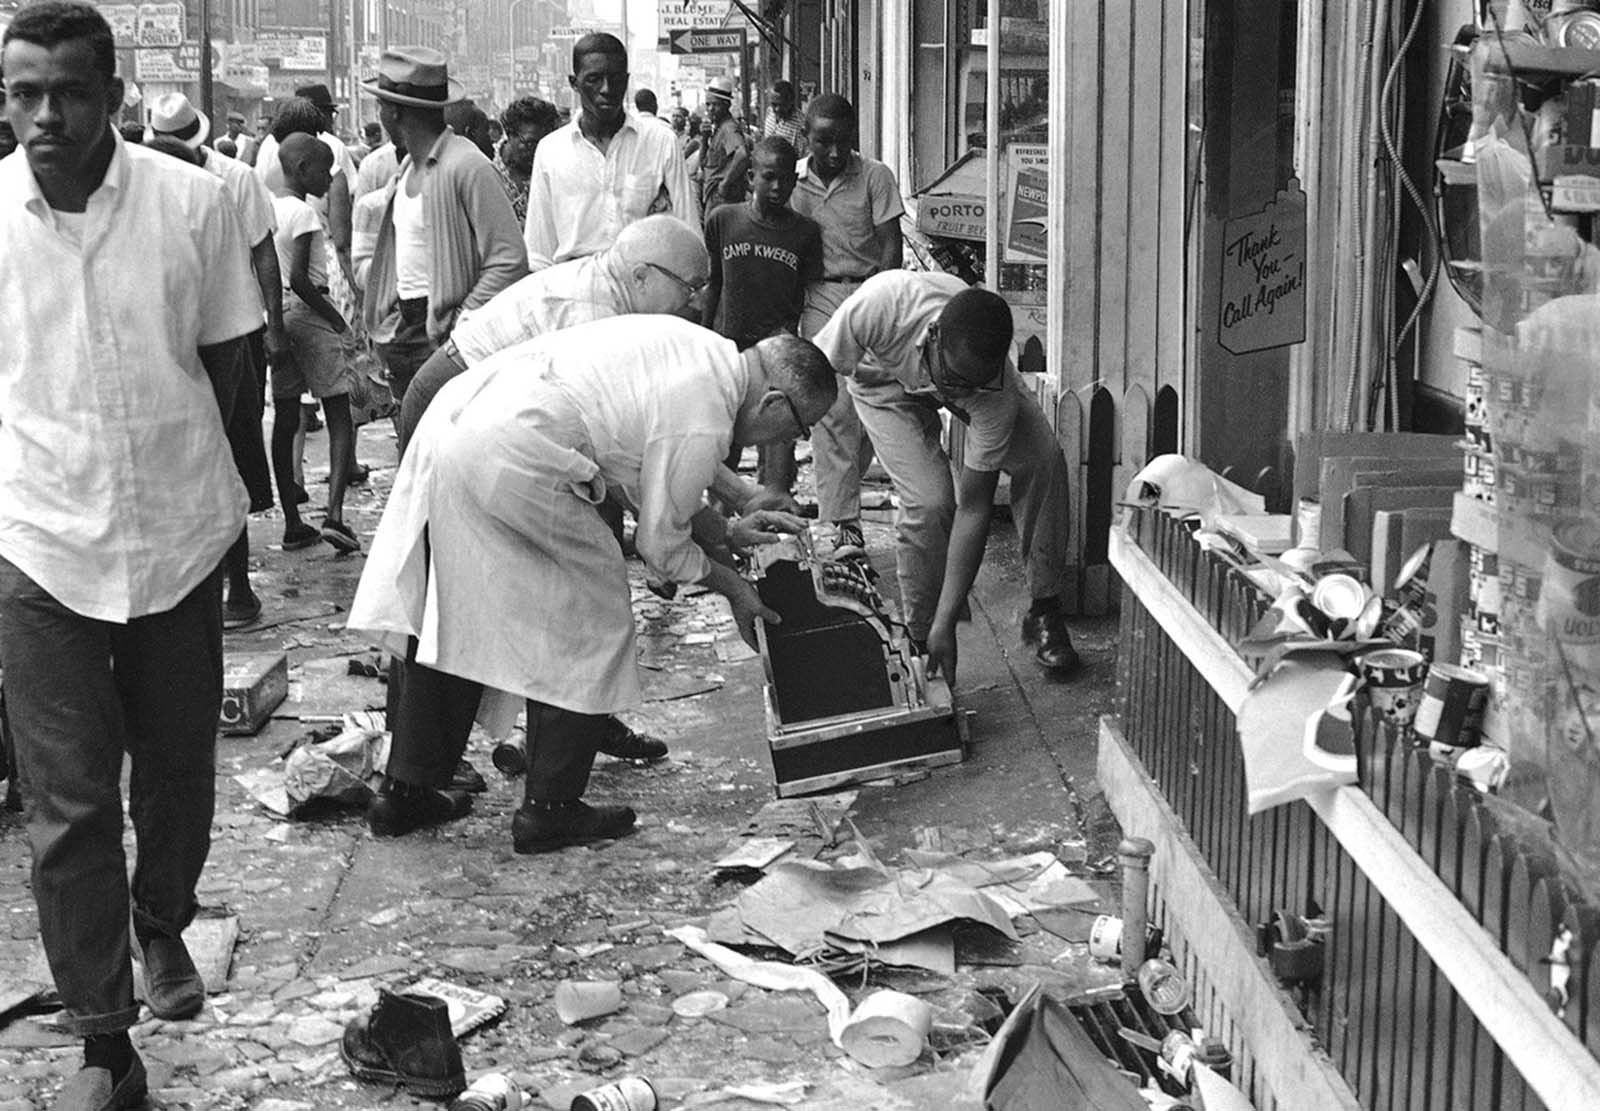 Workmen move a cash register off the sidewalk in front of smashed store, wrecked during wild night of looting and rioting in North Philadelphia, on August 29, 1964.